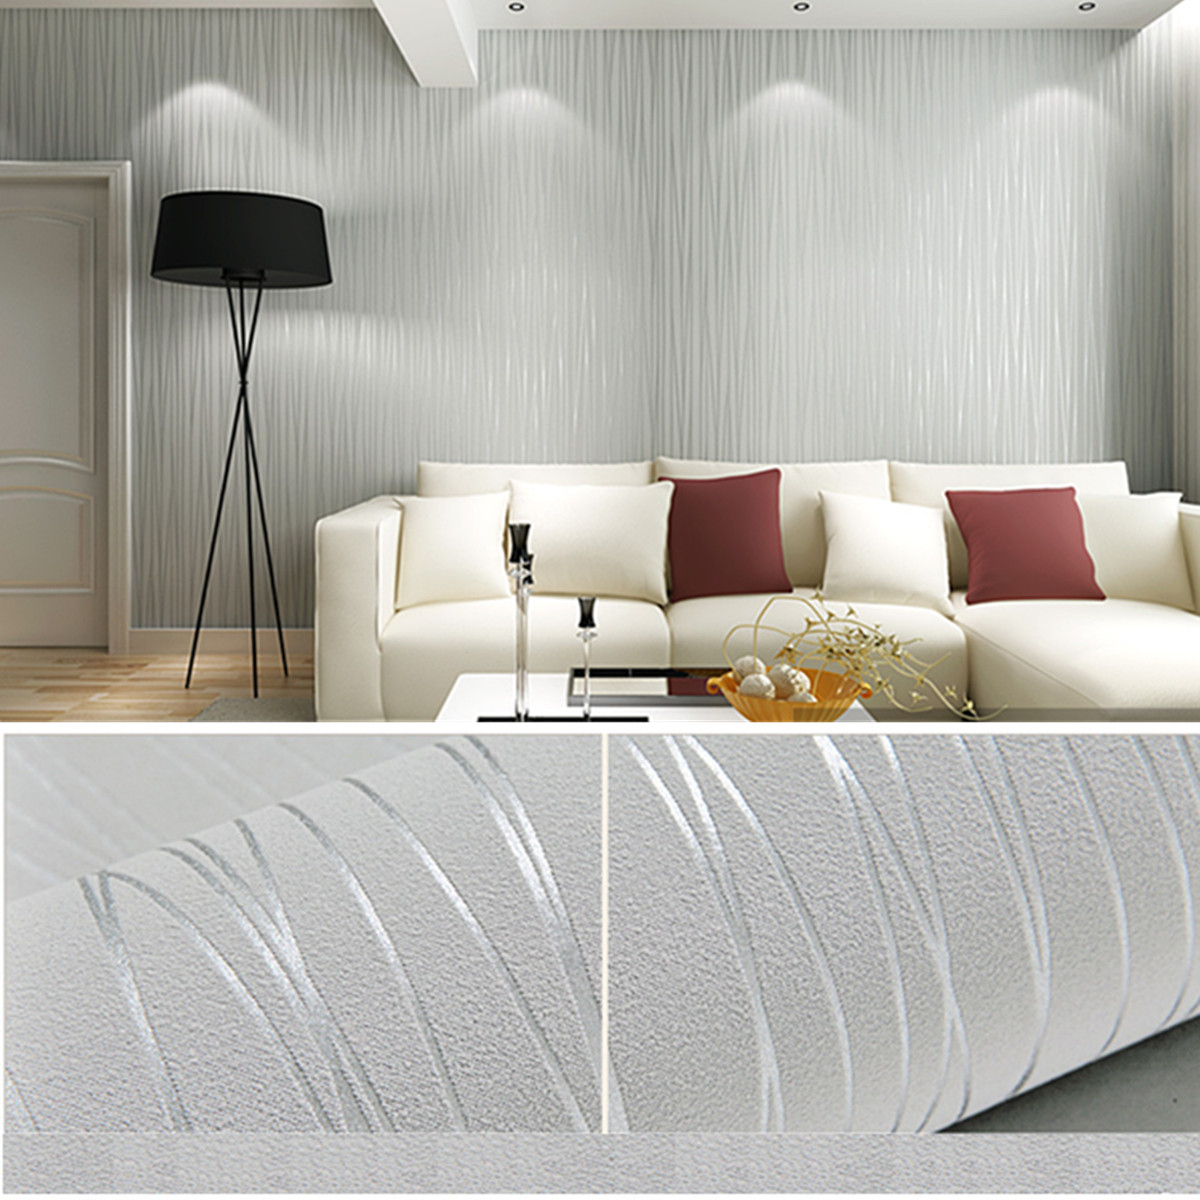 56(sp.ft) 10*10M 3D Flocking Modern Wire Drawing Textured Removable Non-Woven Fabric Wallpaper Home Living Room Bedroom Baby Nursery Wall Decor